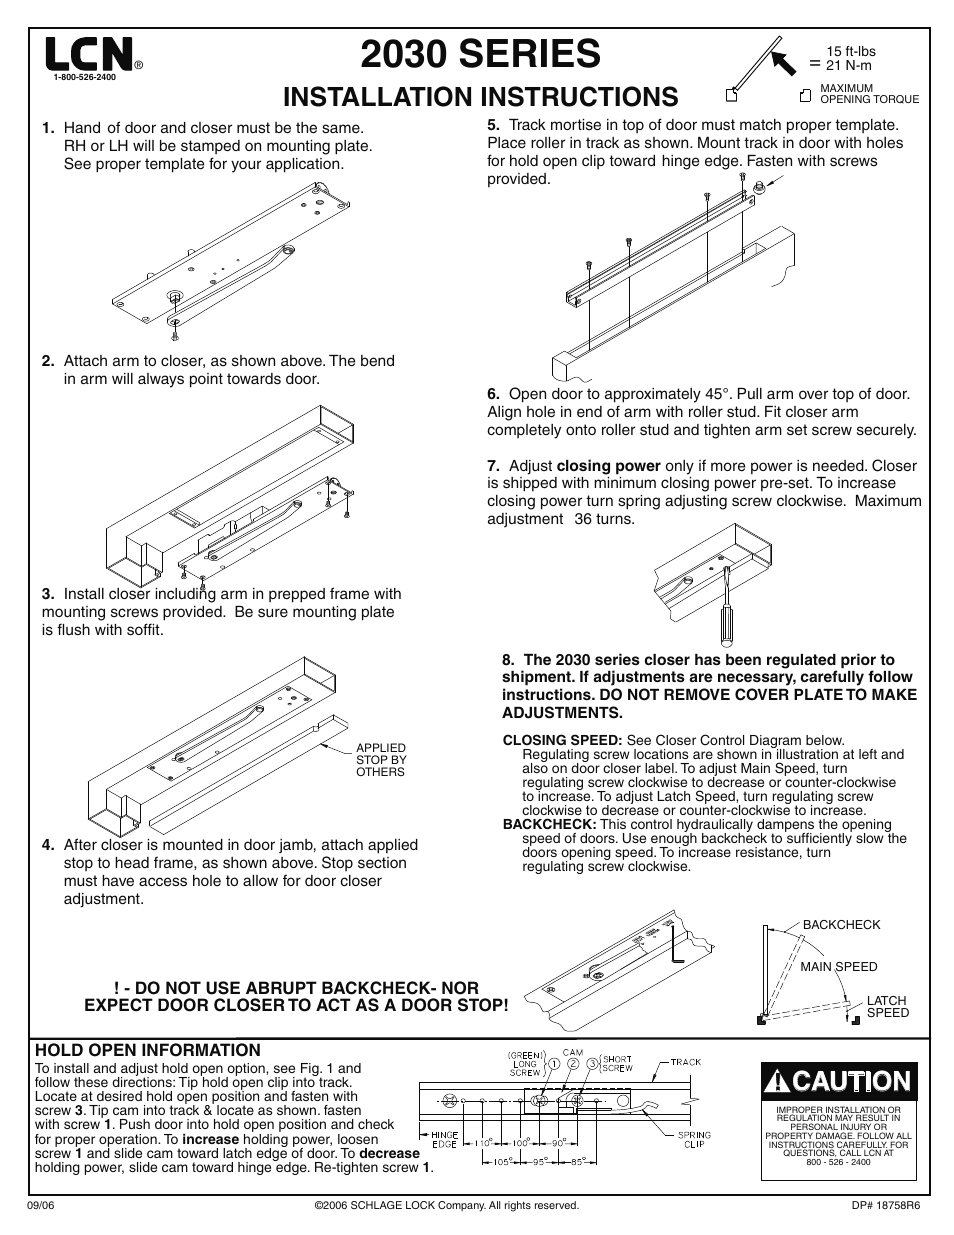 Factory Direct Hardware Lcn 2035 User Manual 4 Pages